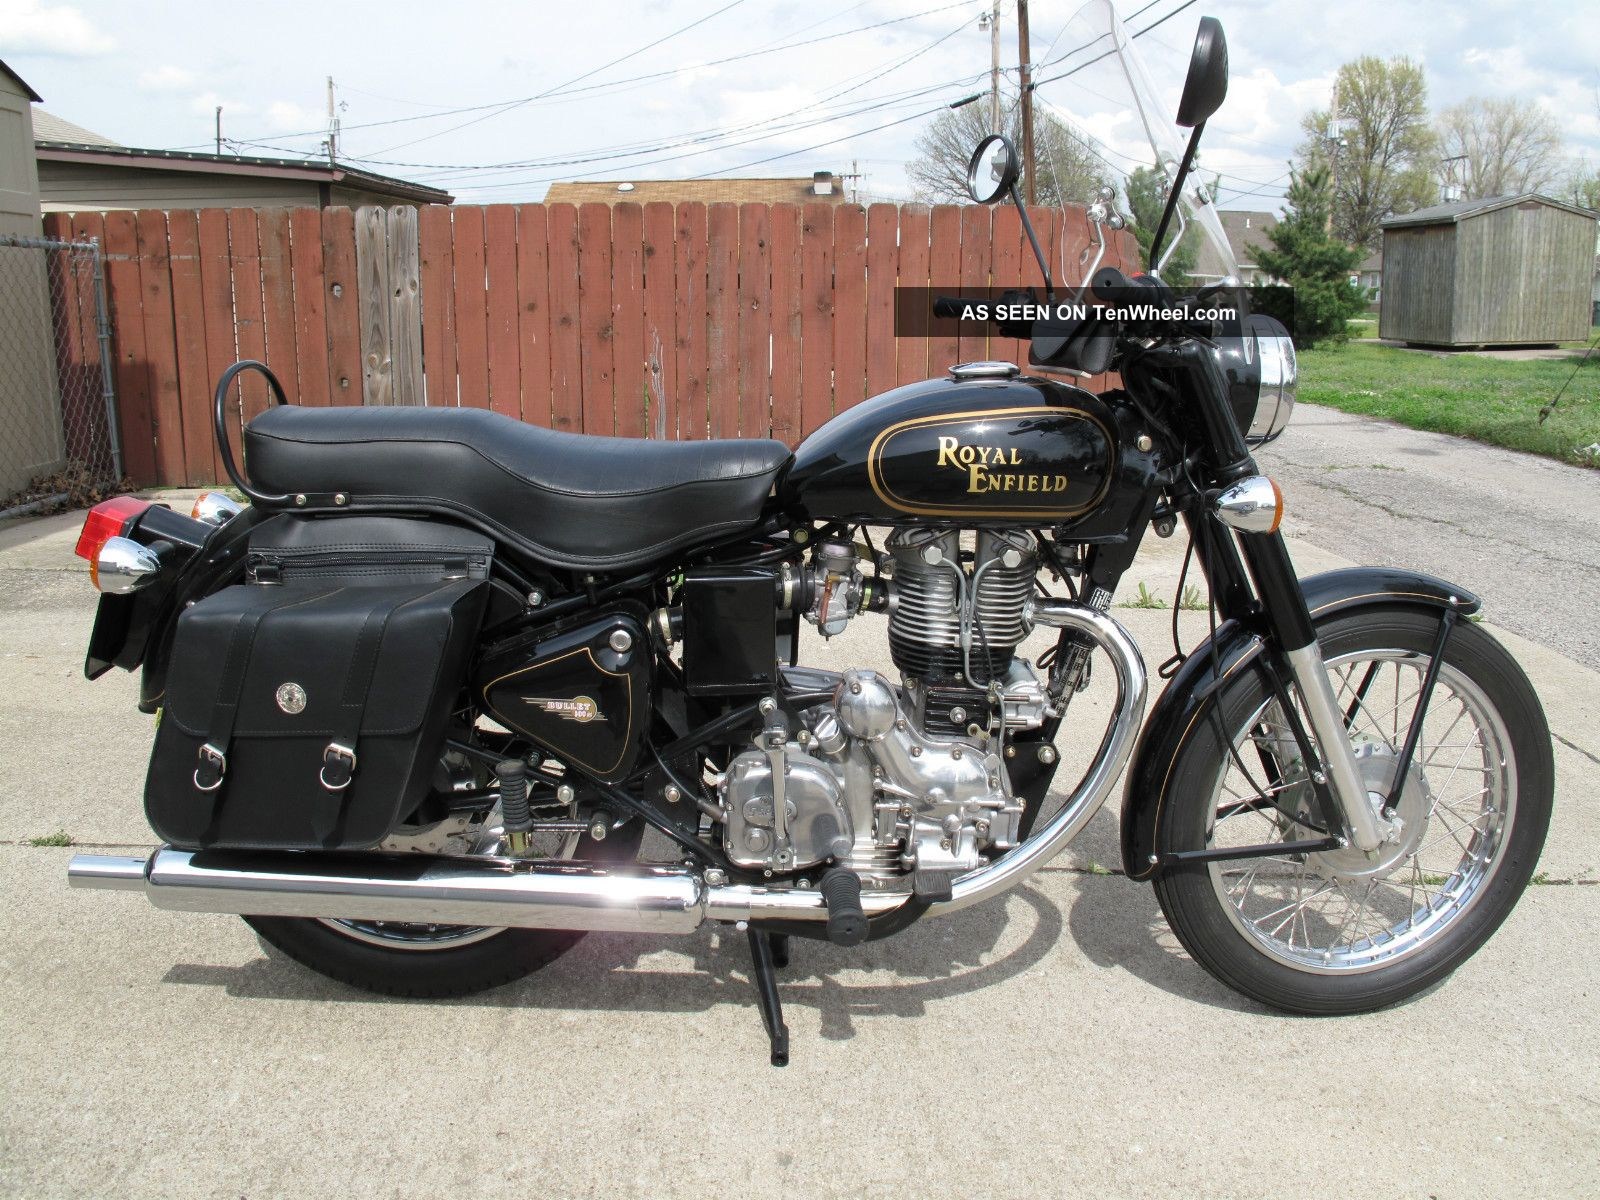 Royal Enfield Bullet 500 Classic images #127677